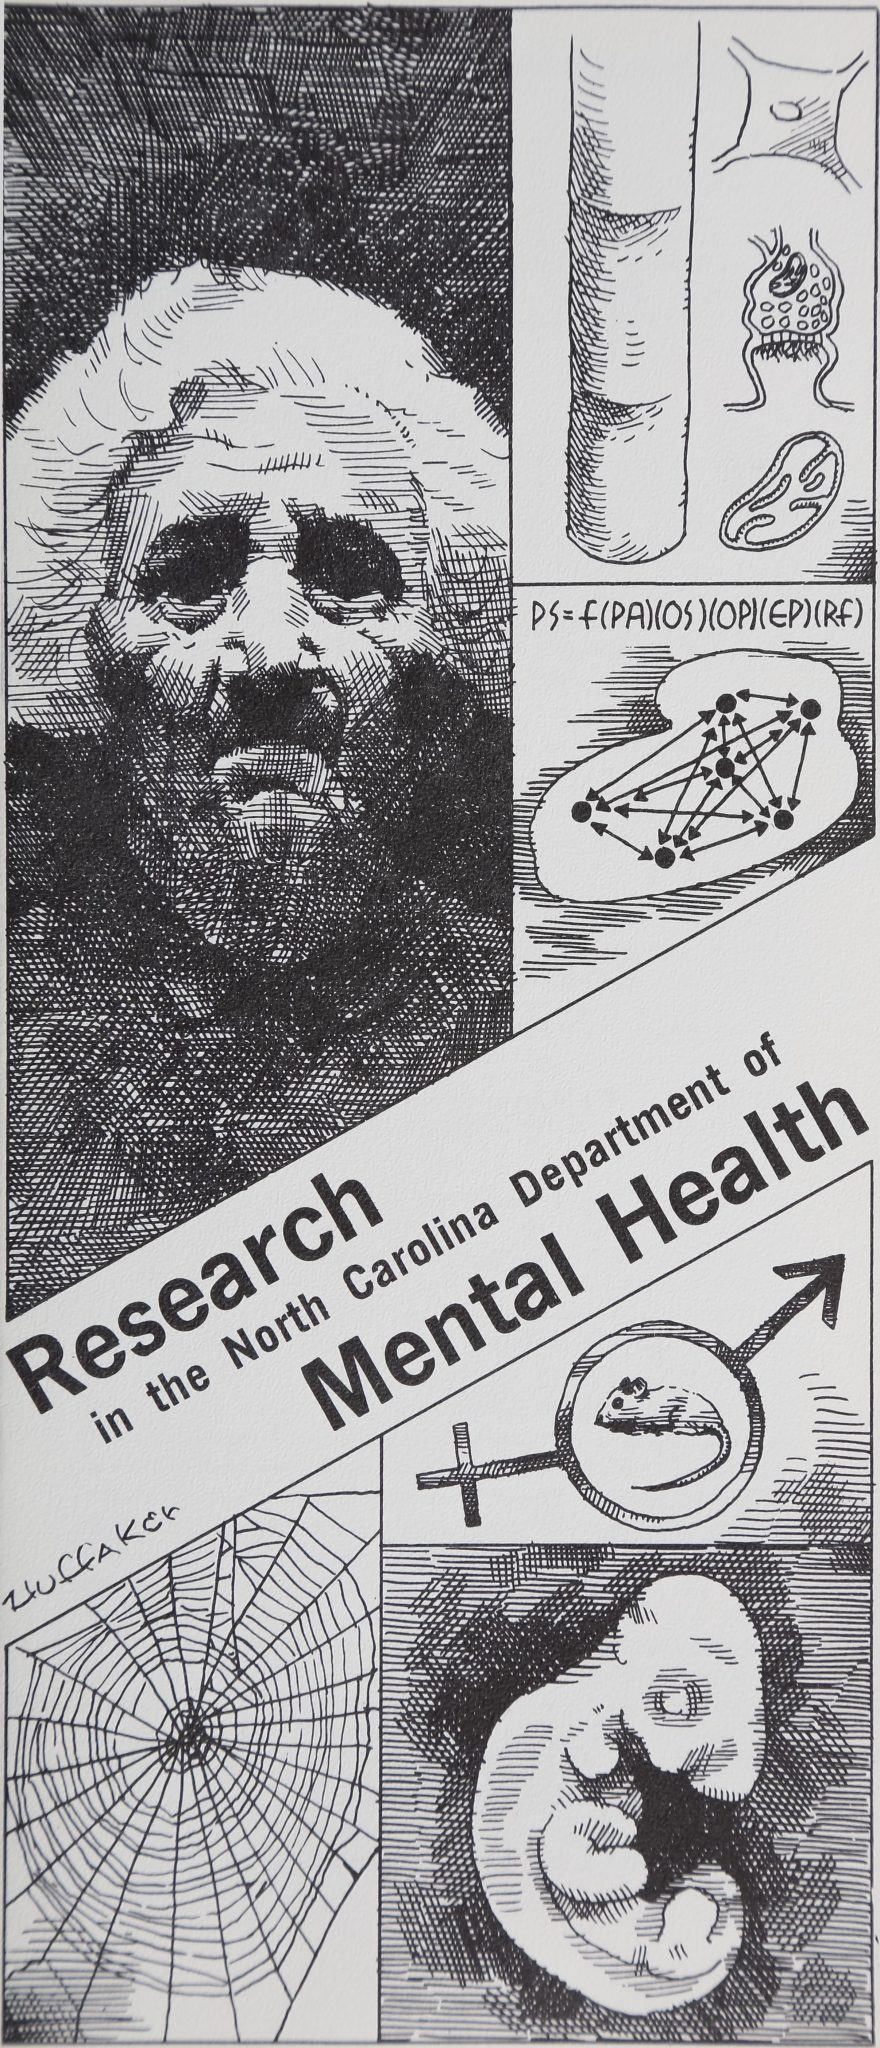 1973-ResearchInTheNCDept-1